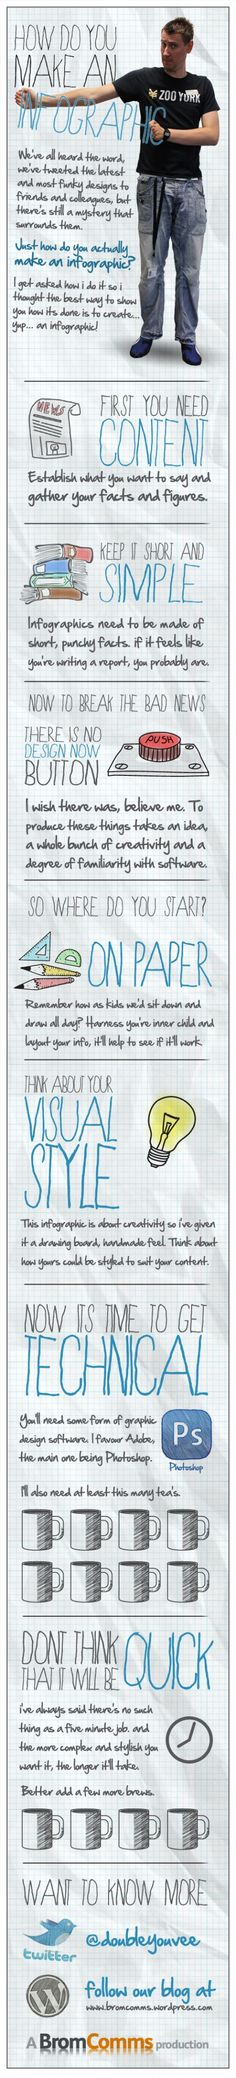 How do you make an infographic #infographic